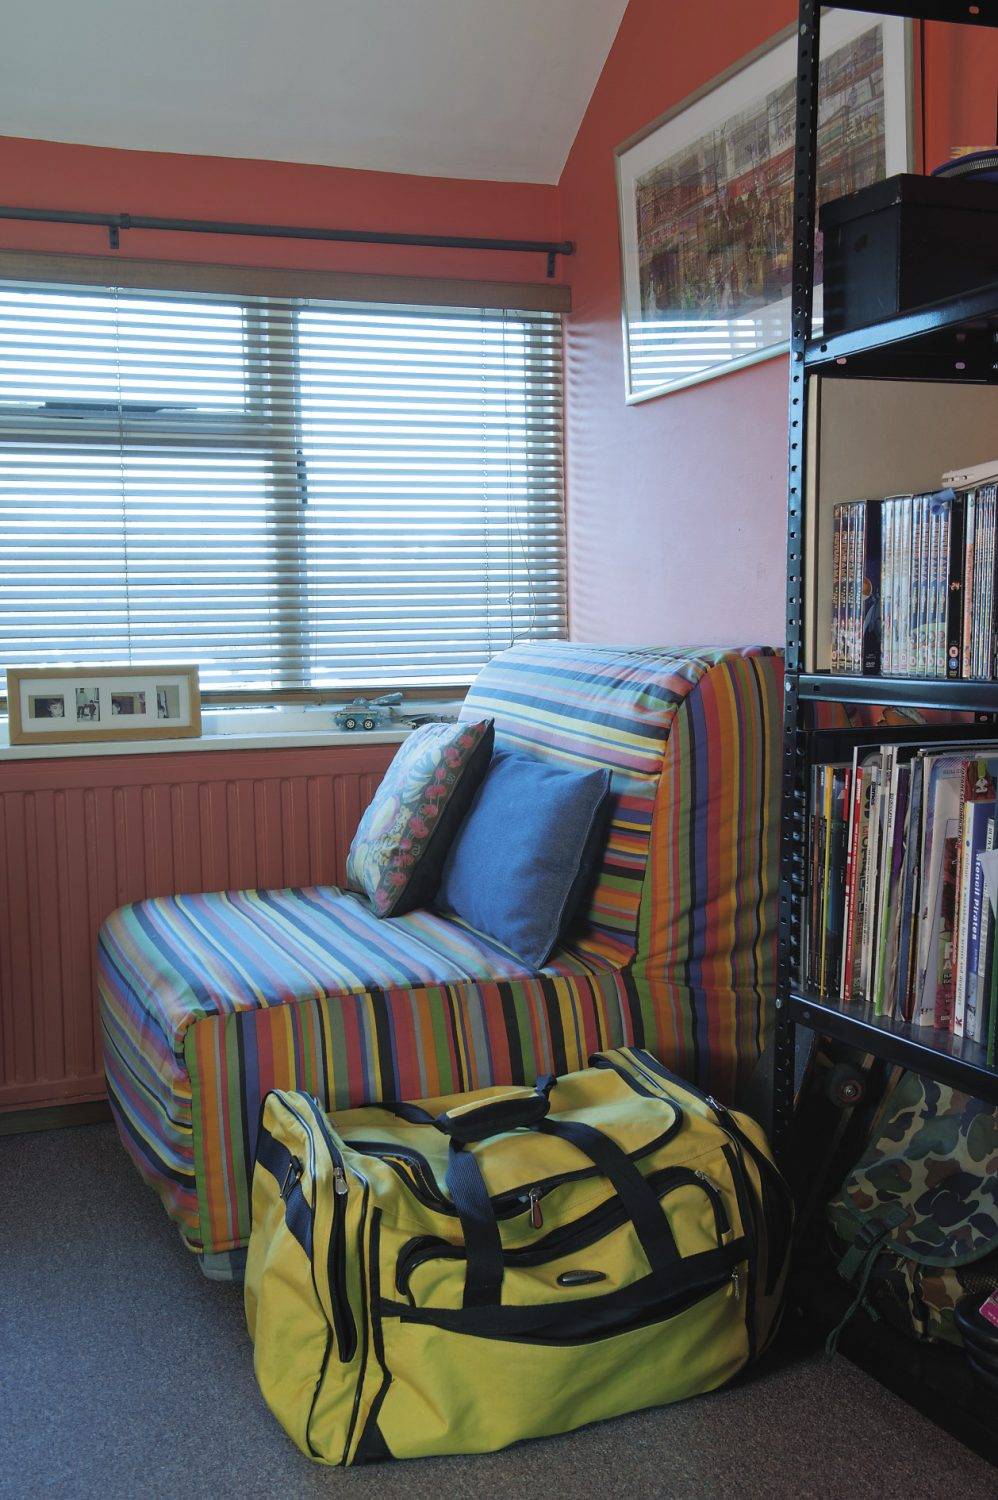 The couple's son's room already shows all the telltale signs of the architectural student. Every item of furniture is placed at right angles to the watermelon red walls (architects never seem to place anything on the diagonal) and there is a striped chair in front of the window where curtains have been rejected in favour of simple wooden Venetian blinds